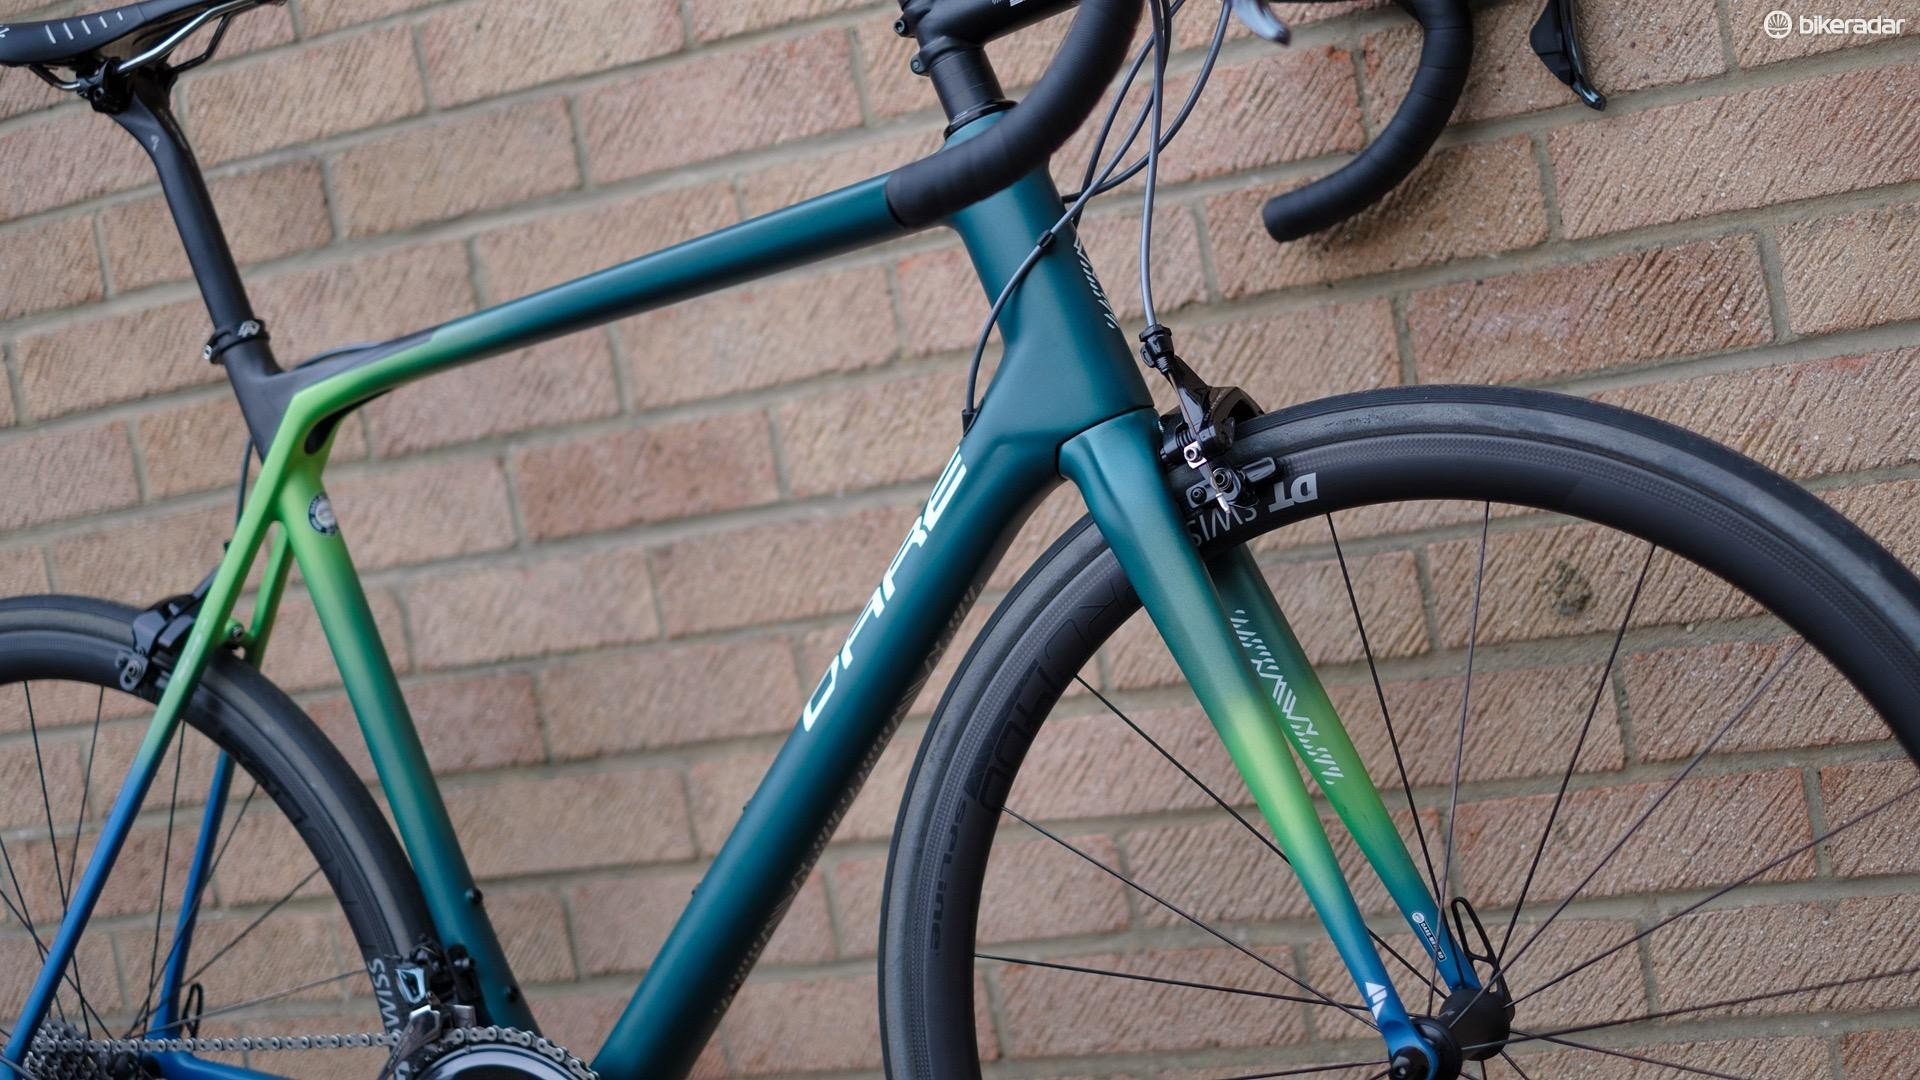 The MR1s is also available with disc brakes